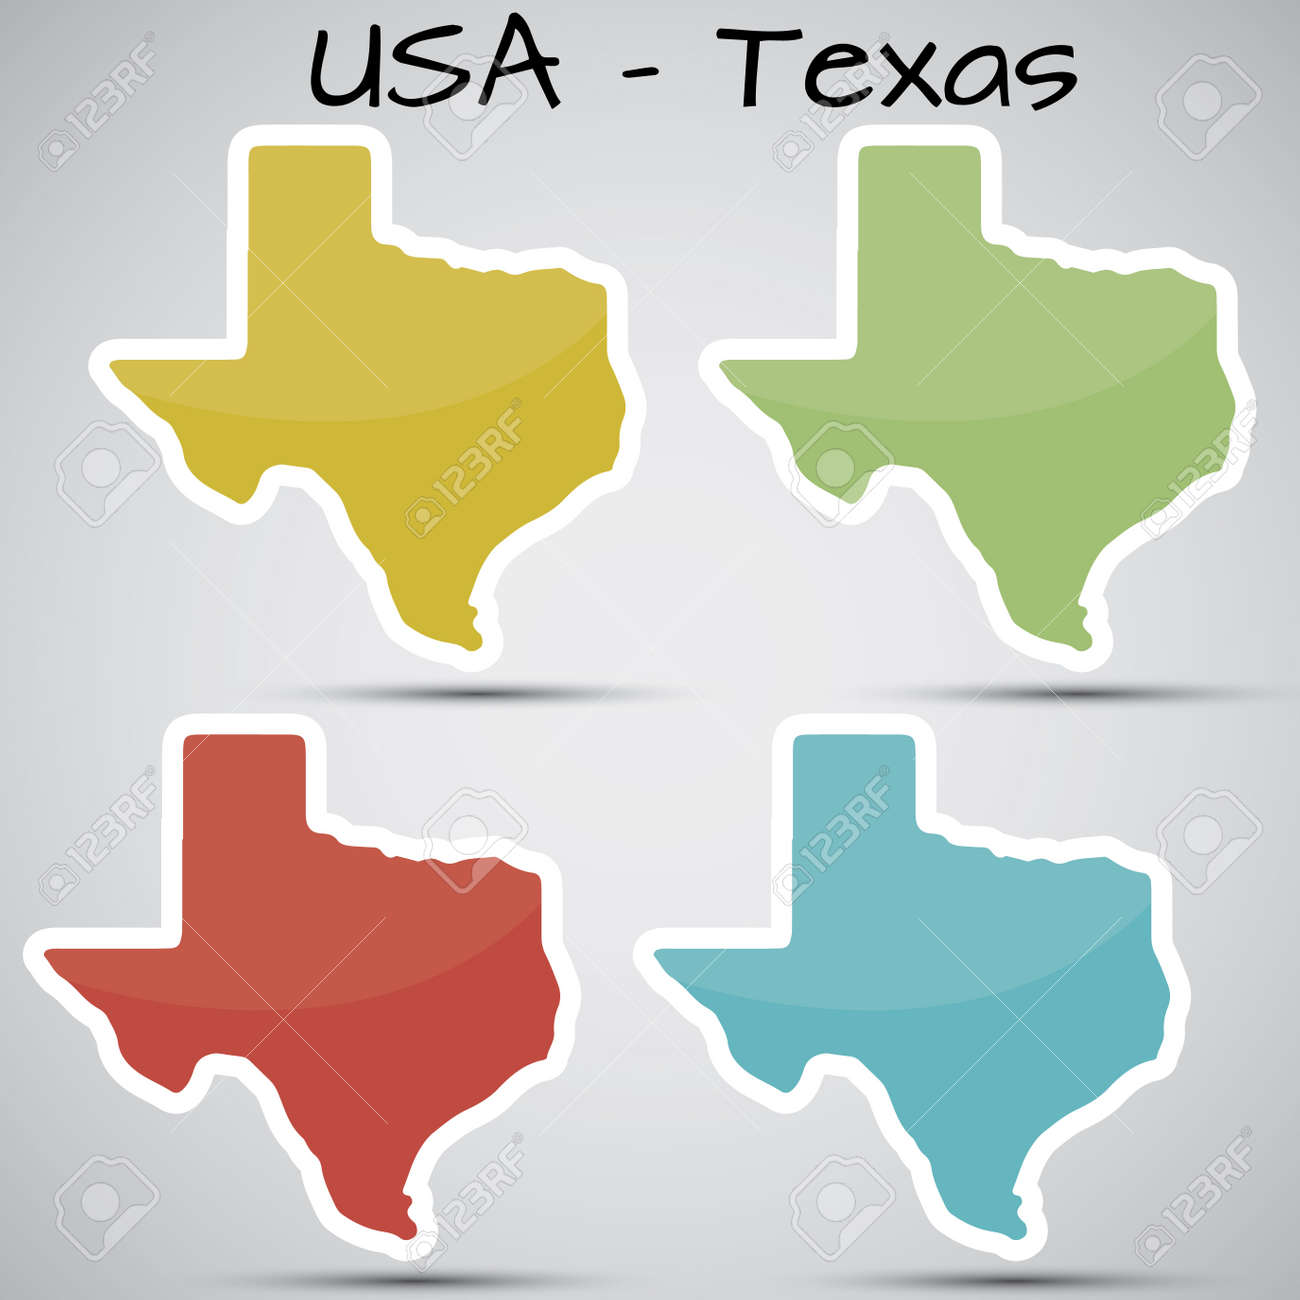 stickers in form of Texas state, USA - 21633671